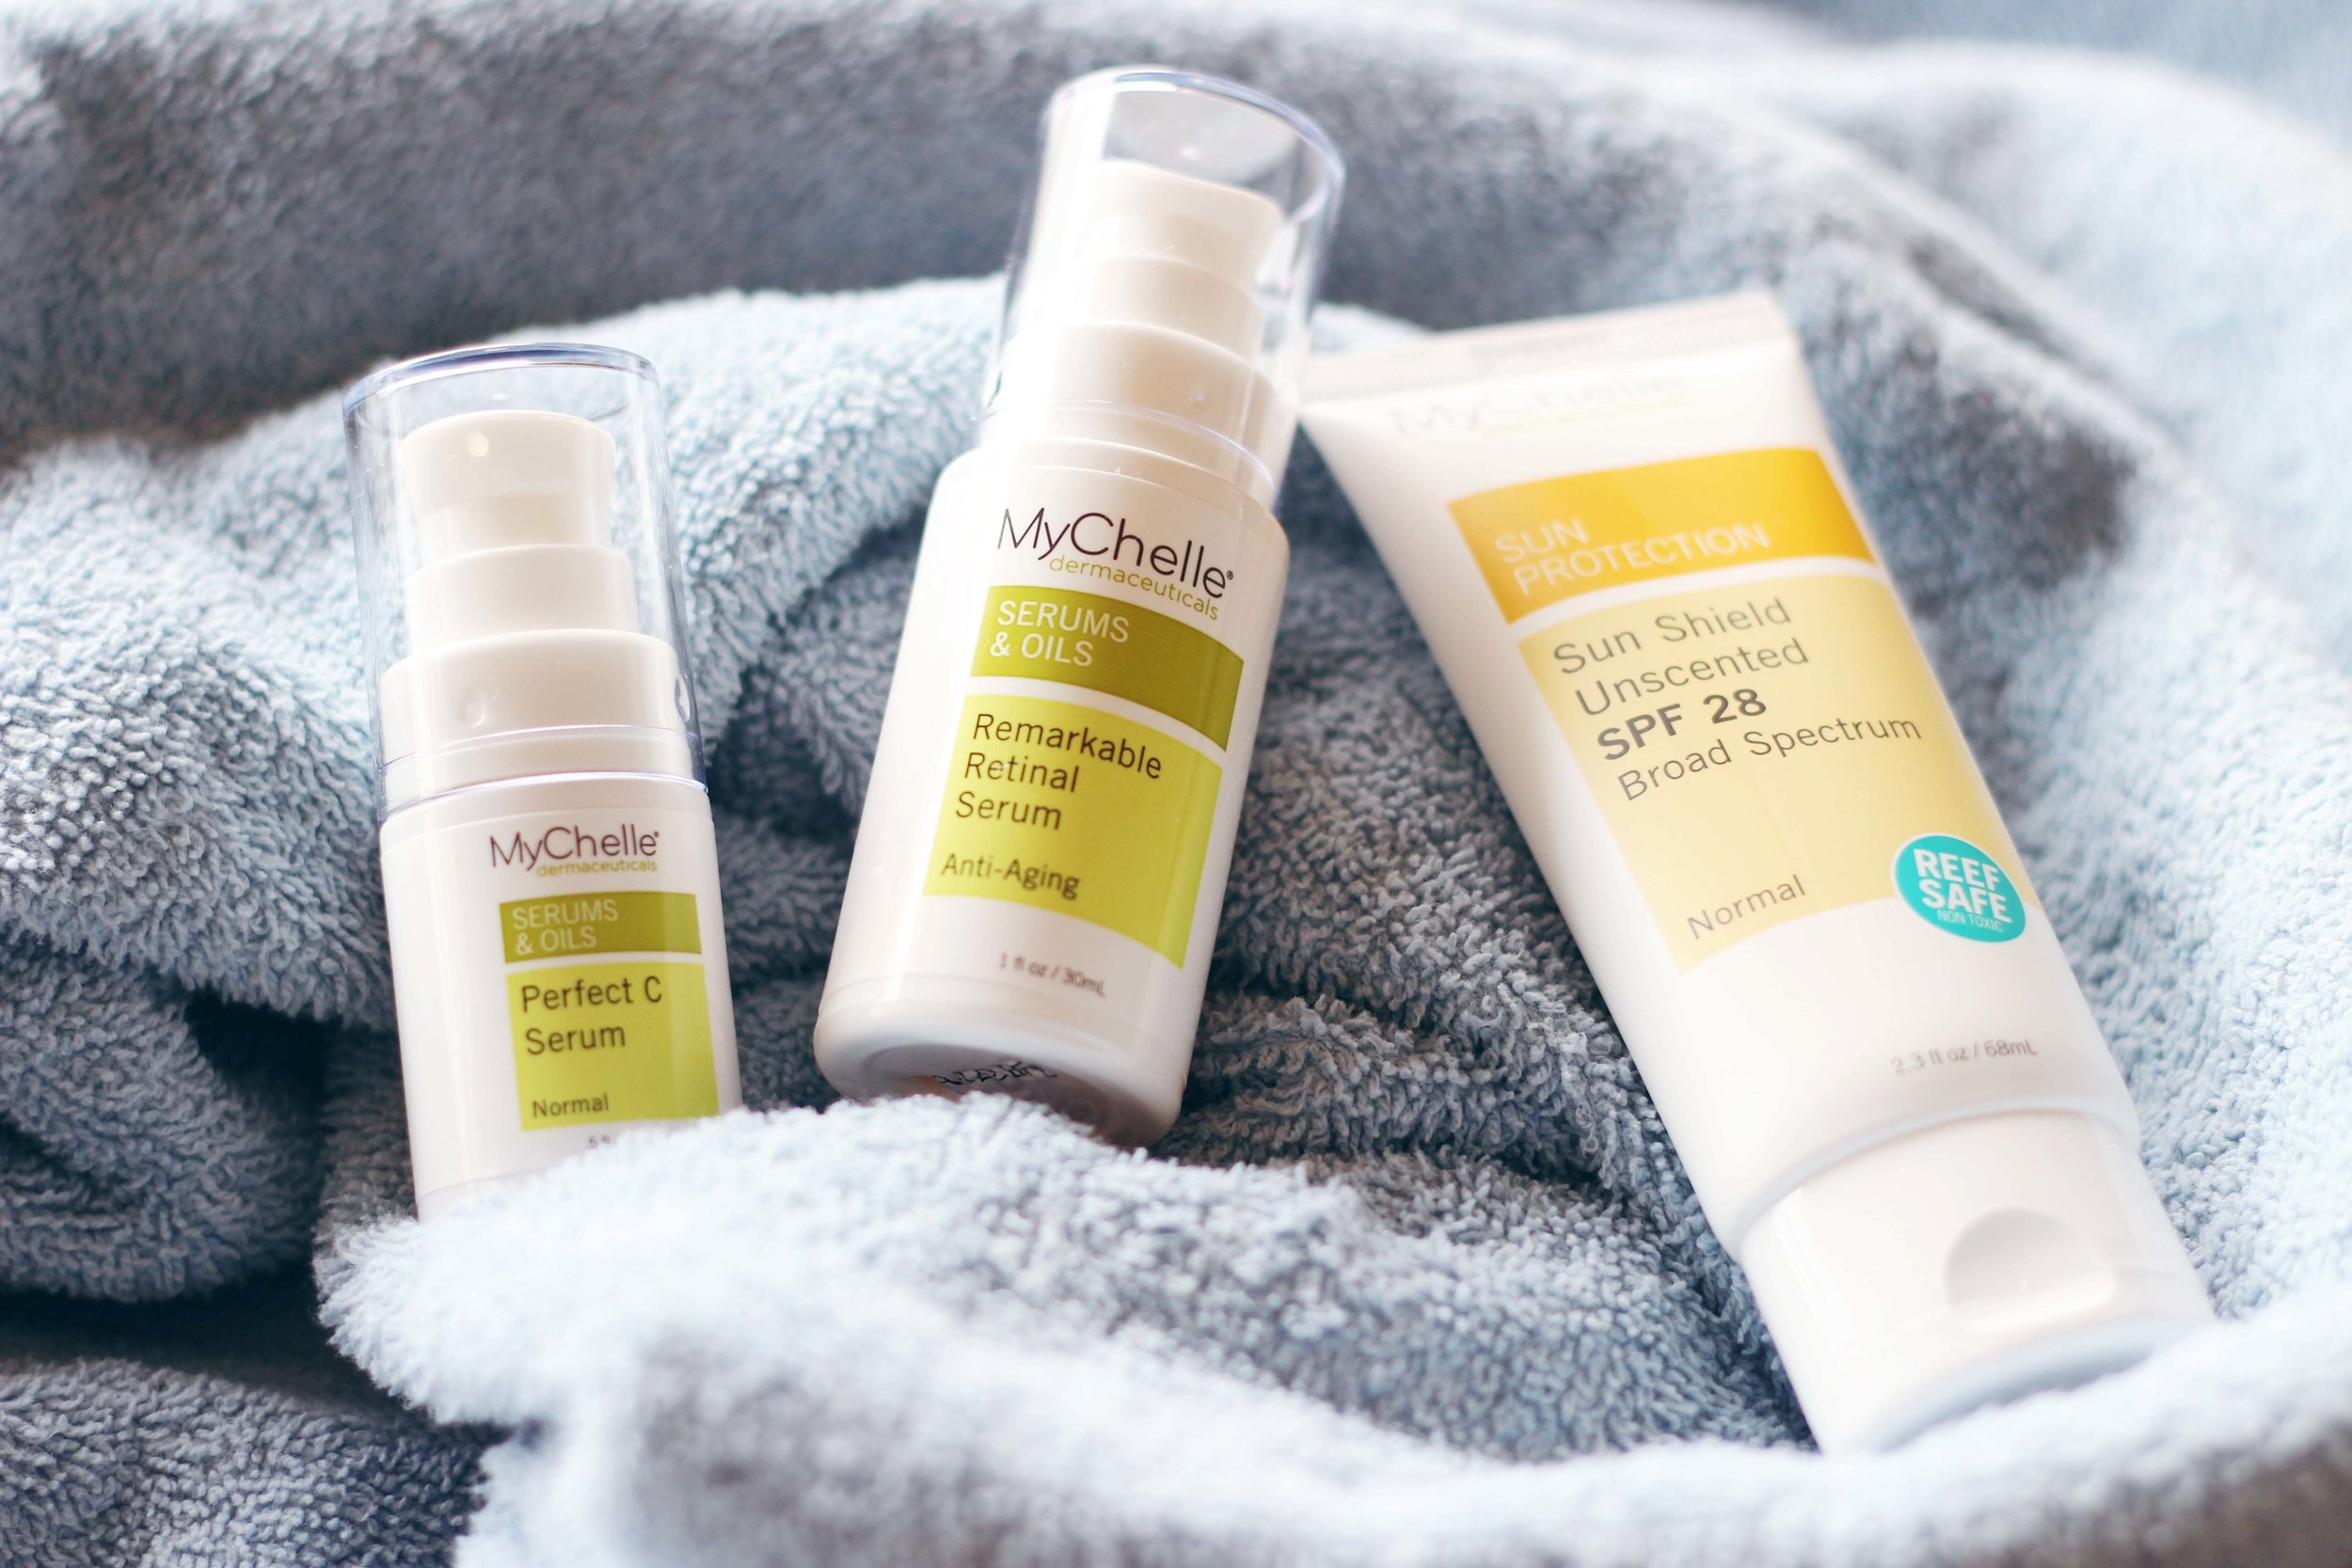 MyChelle Dermaceuticals skincare set AND $25 Fresh Thyme Farmers Market gift card giveaway!